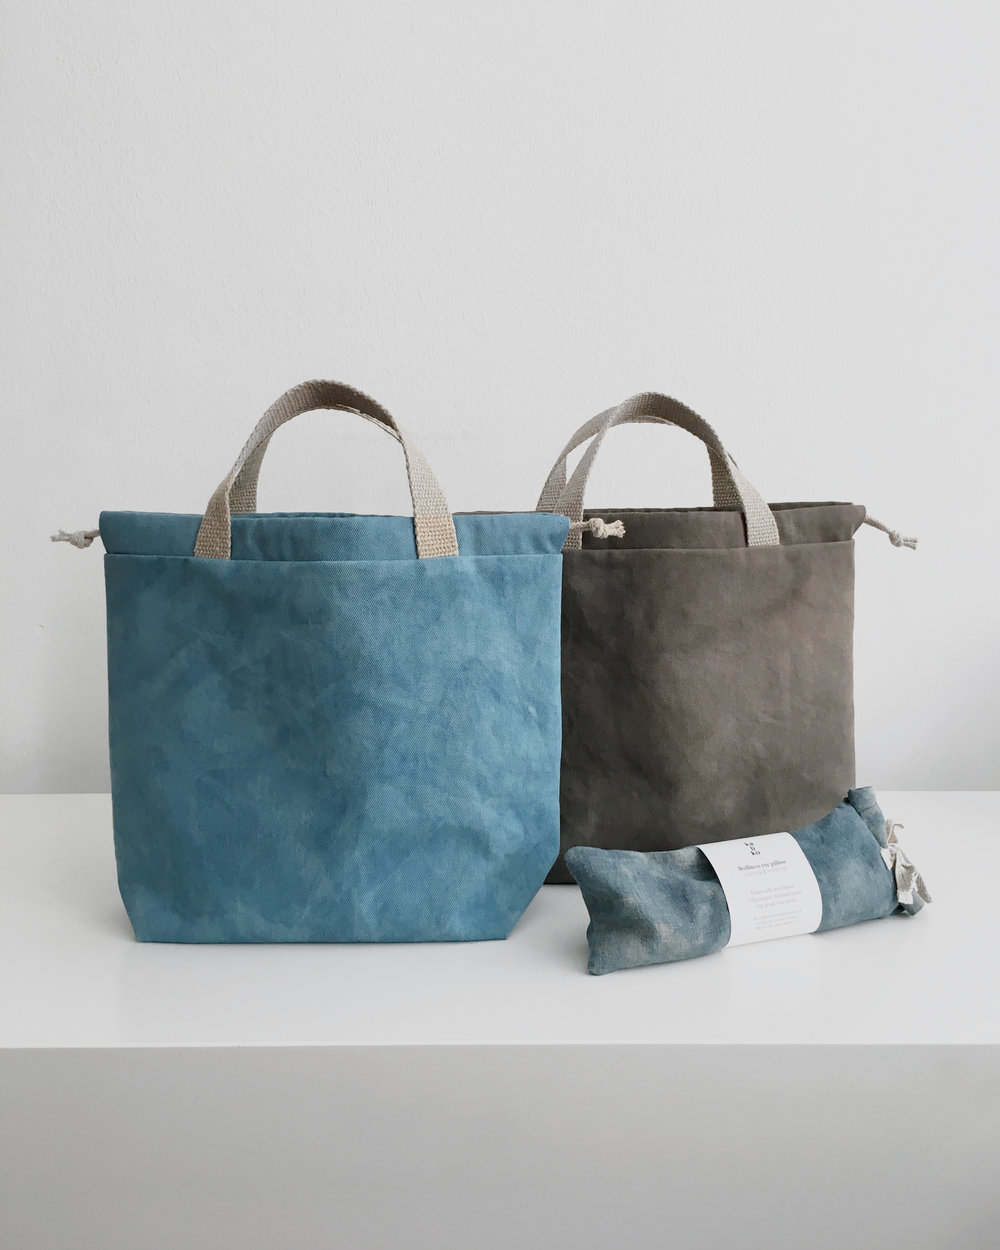 Woad dyed bags and eye pillows and acorns dyed bags available online #eyepillow #thefuturekept #bags #slowfashion